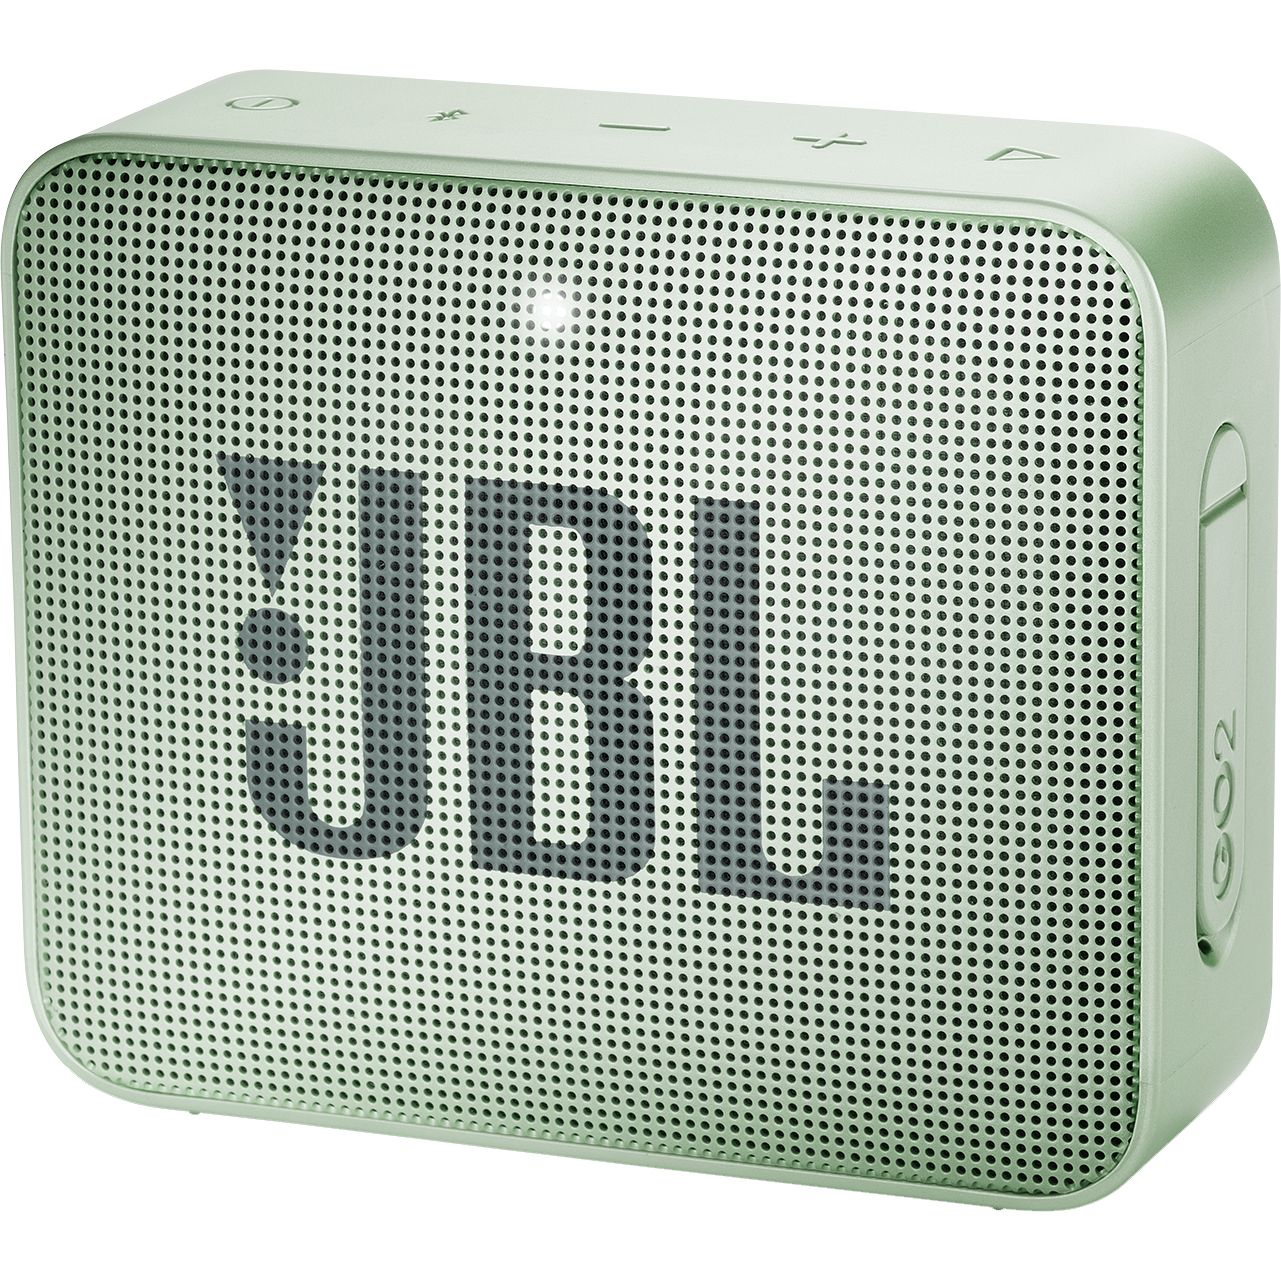 Boxa portabila JBL Go 2, Wireless, Bluetooth, IPX7 Waterproof, Seafoam Mint